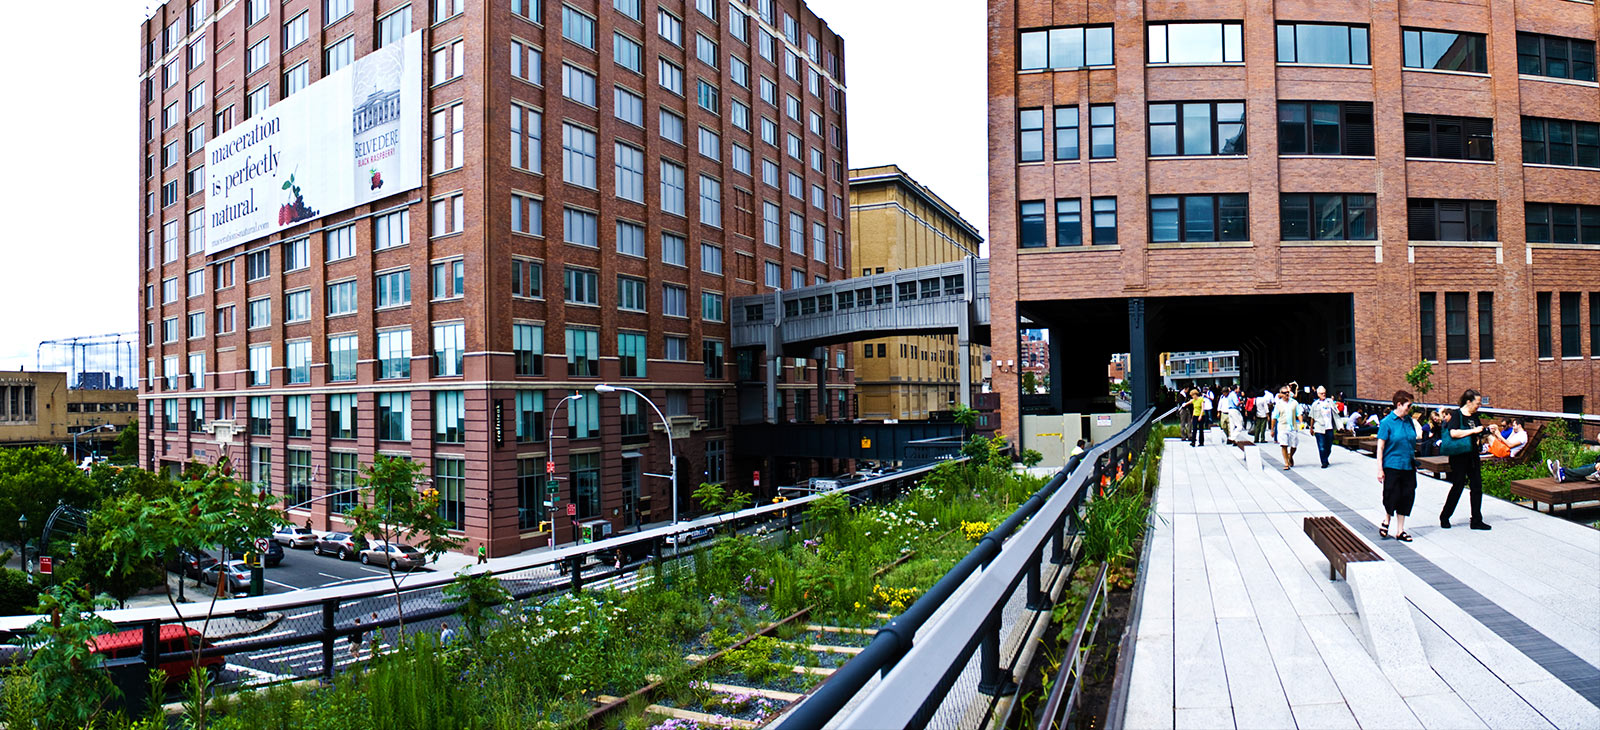 De High Line in New York. Foto: Gbarill/Wikimedia Commons